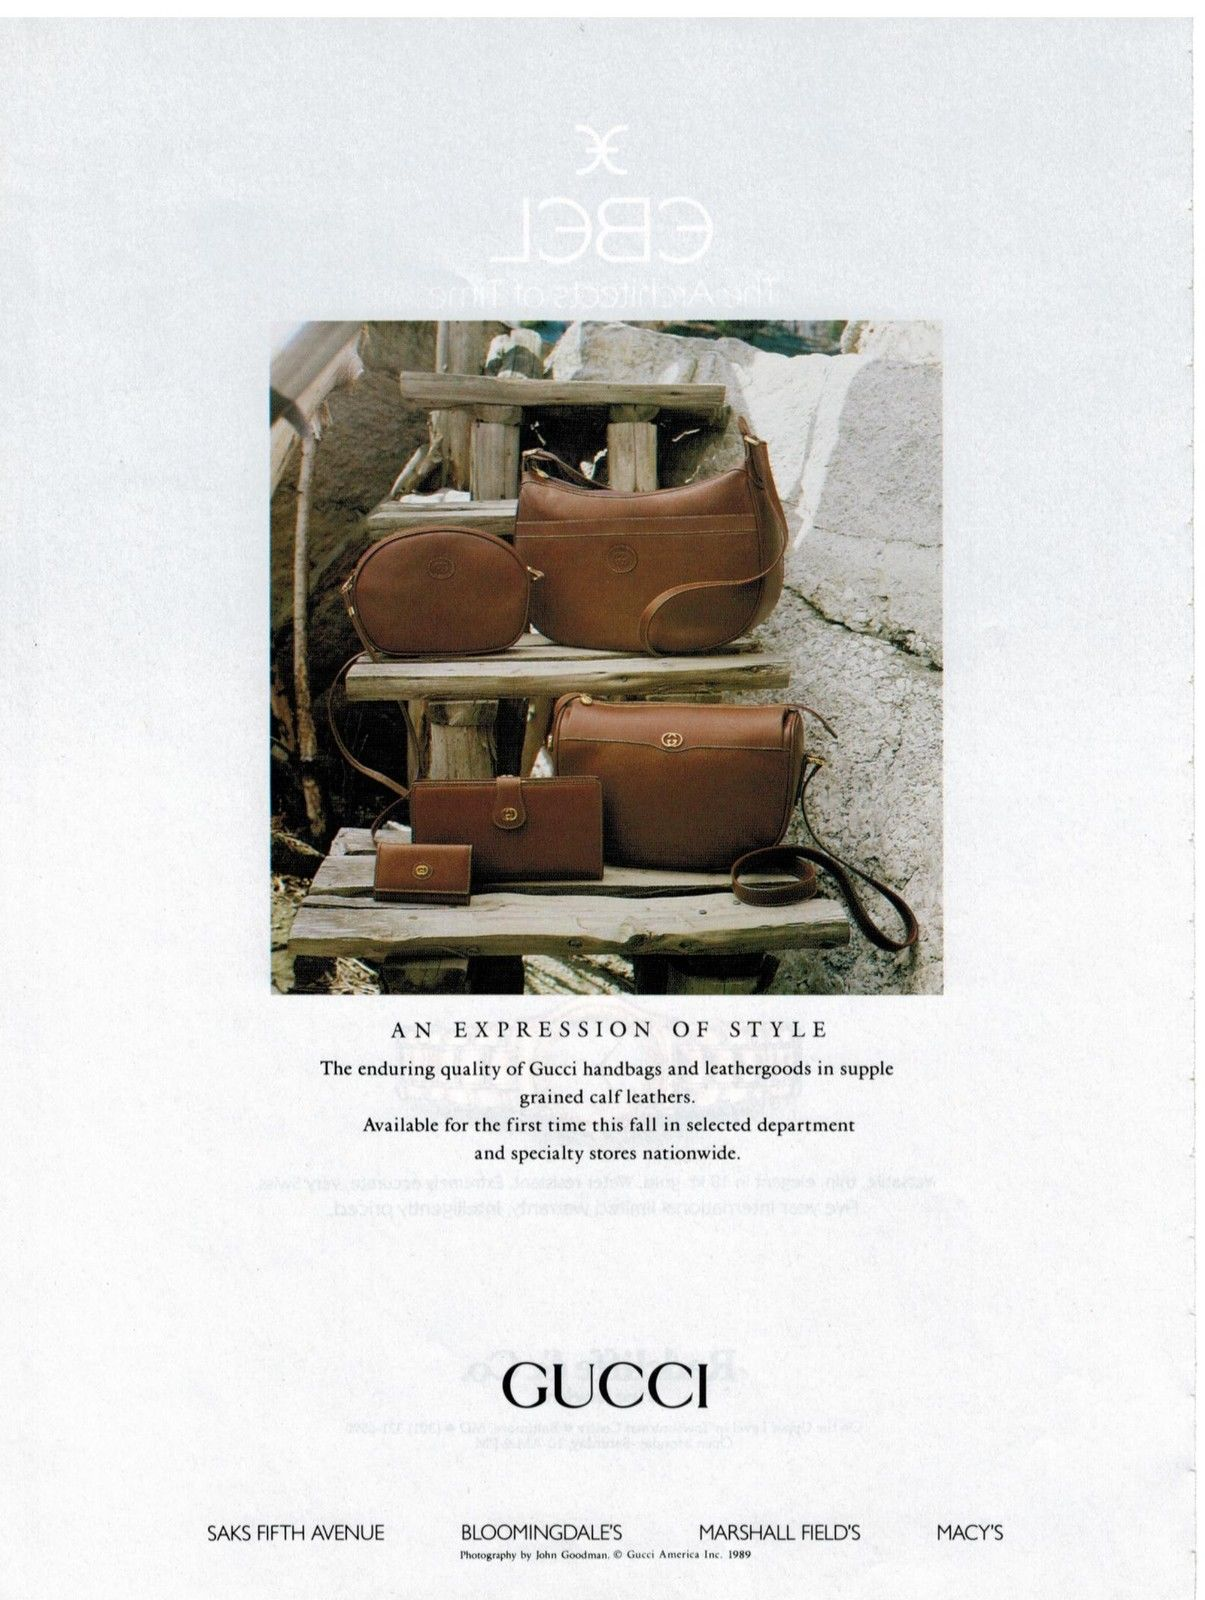 1989 Gucci Fall Winter grained calf leather bag print ad - Vintage Gucci advertising campaigns archive